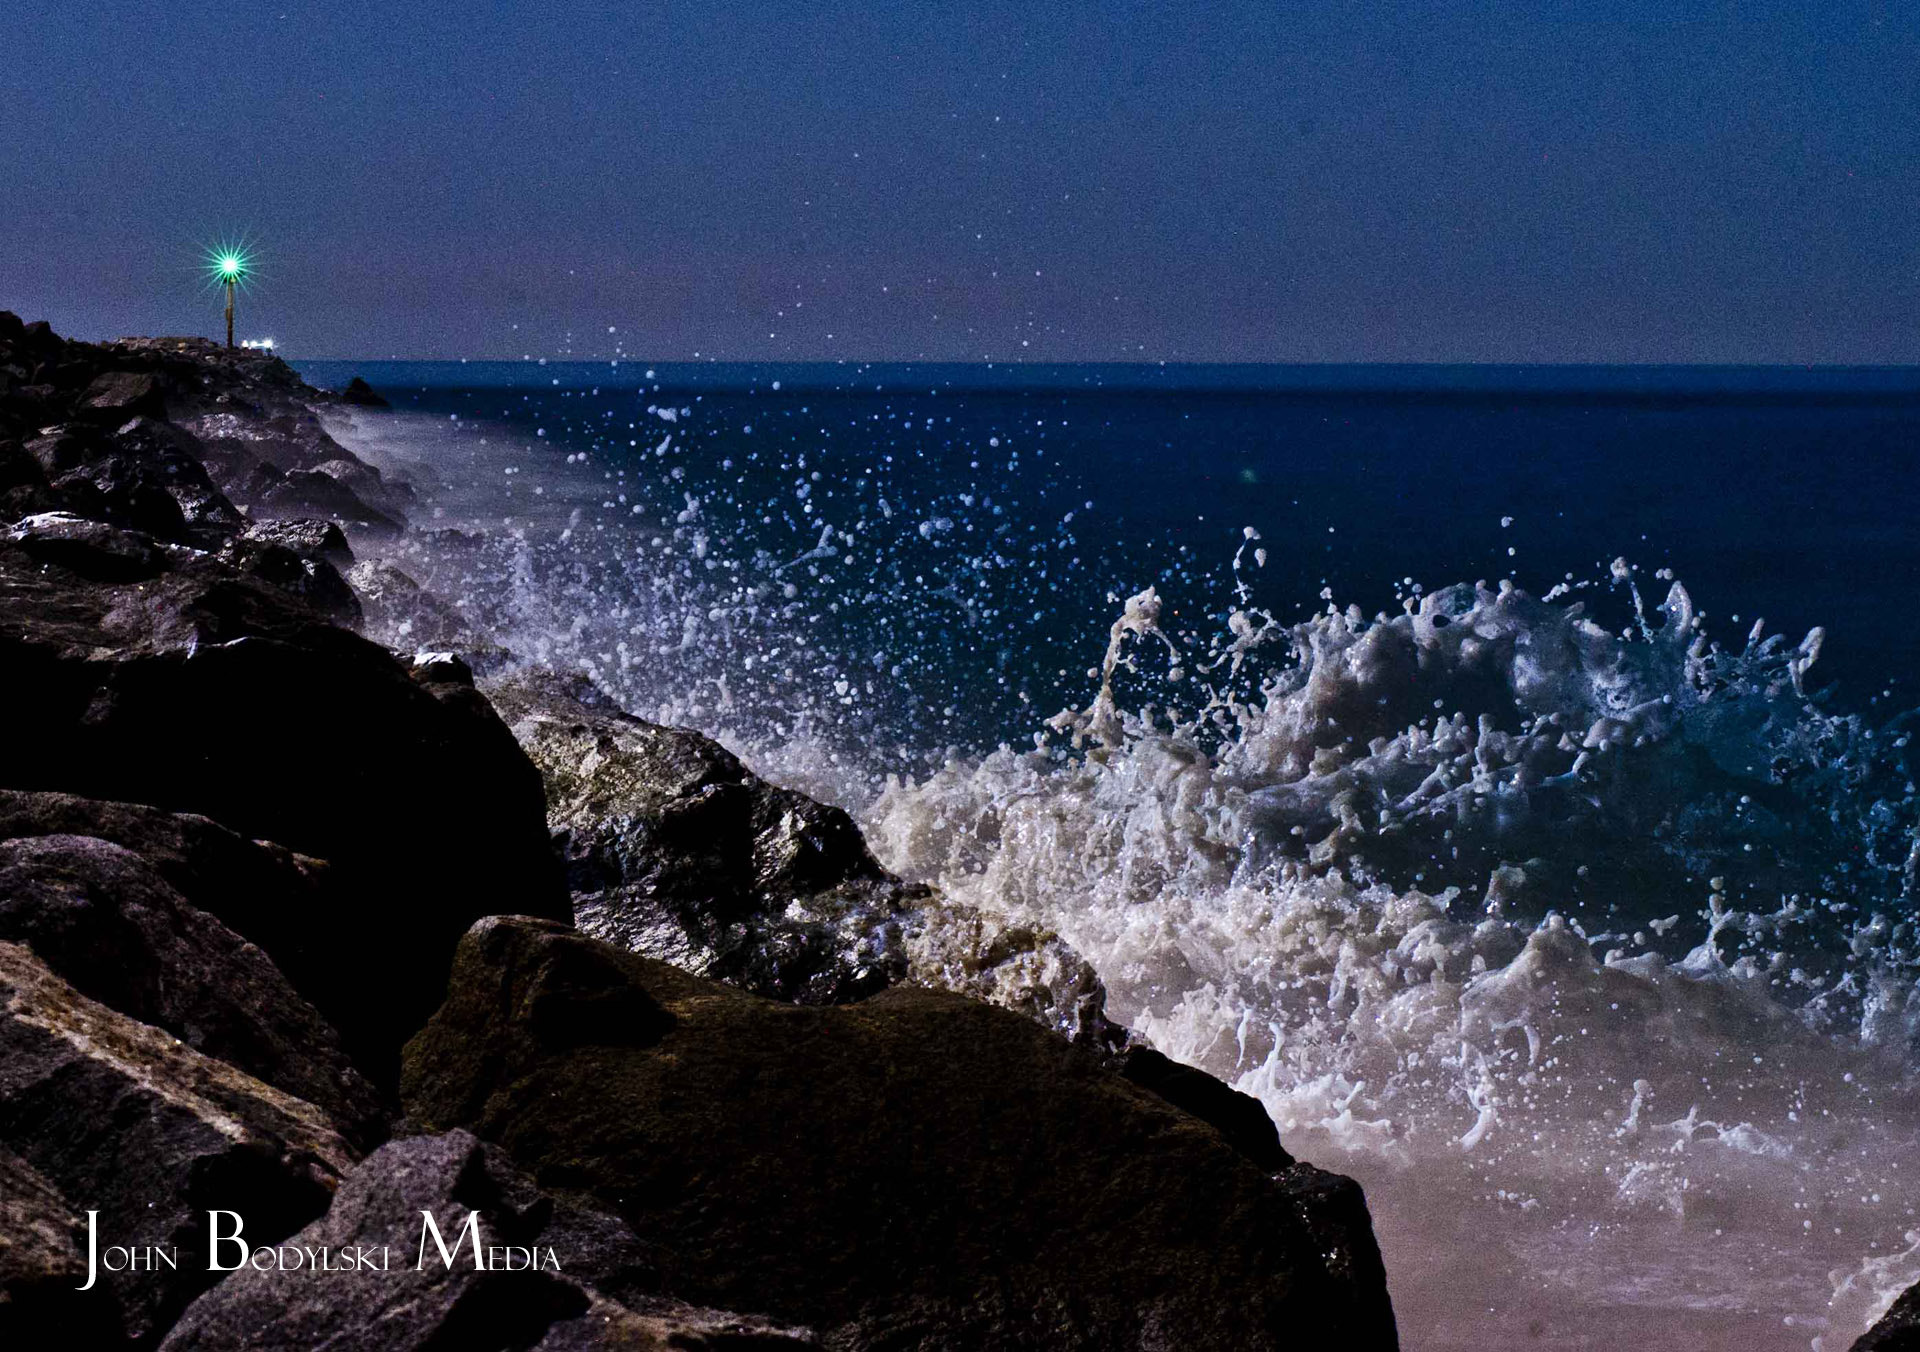 Photograph Waves in the Night by Johnny Bodylski on 500px